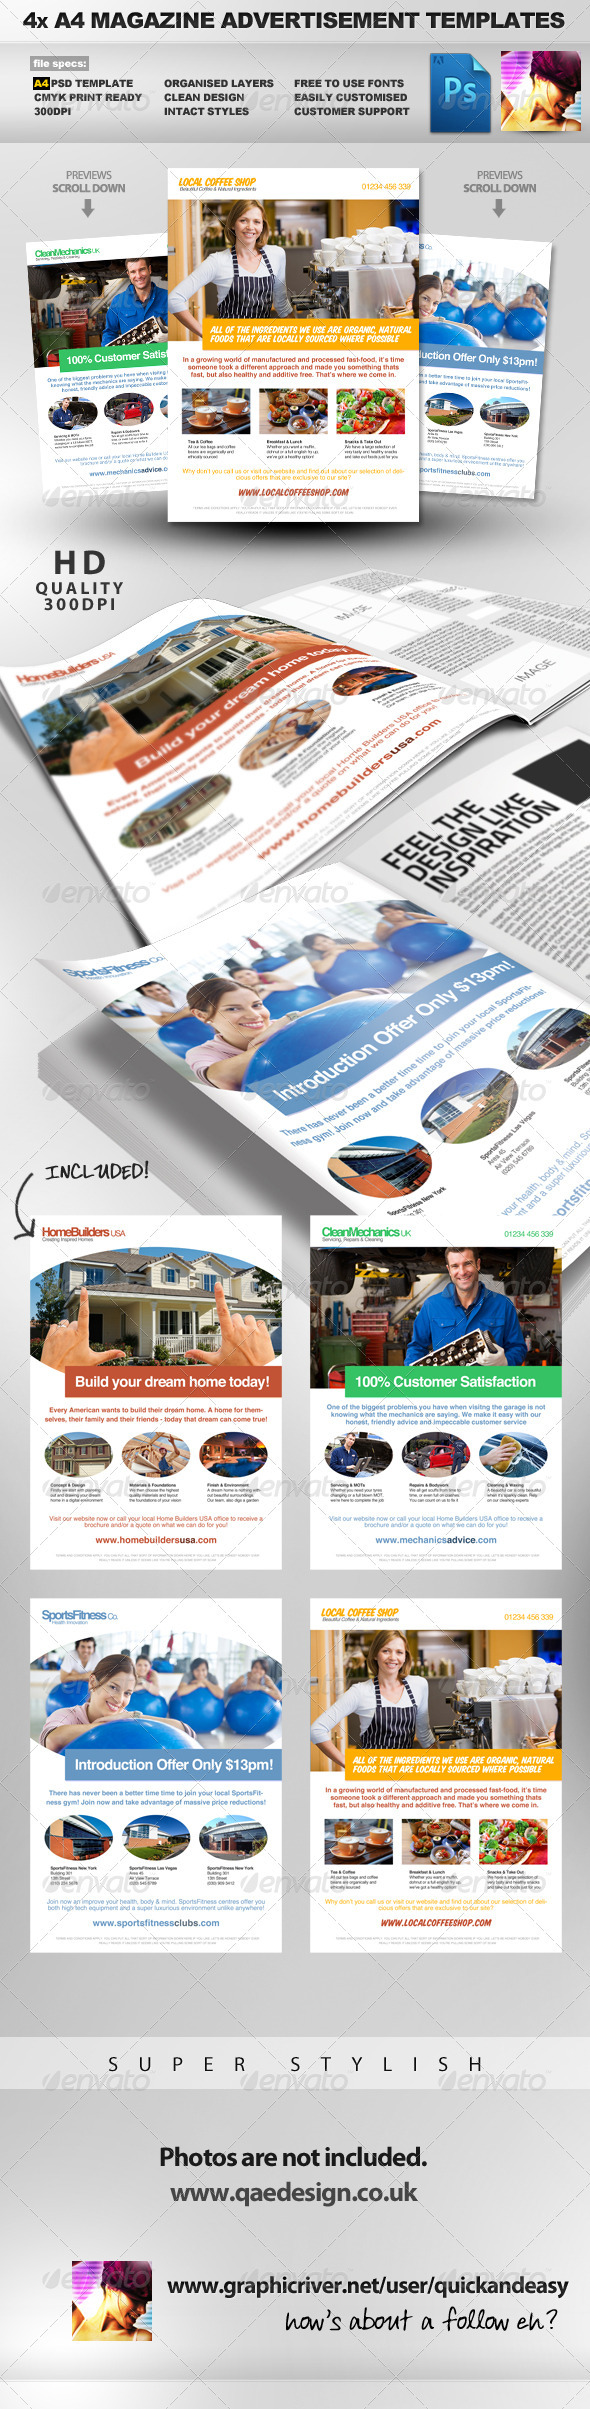 Advertisement Templates Free Advertisement Templates